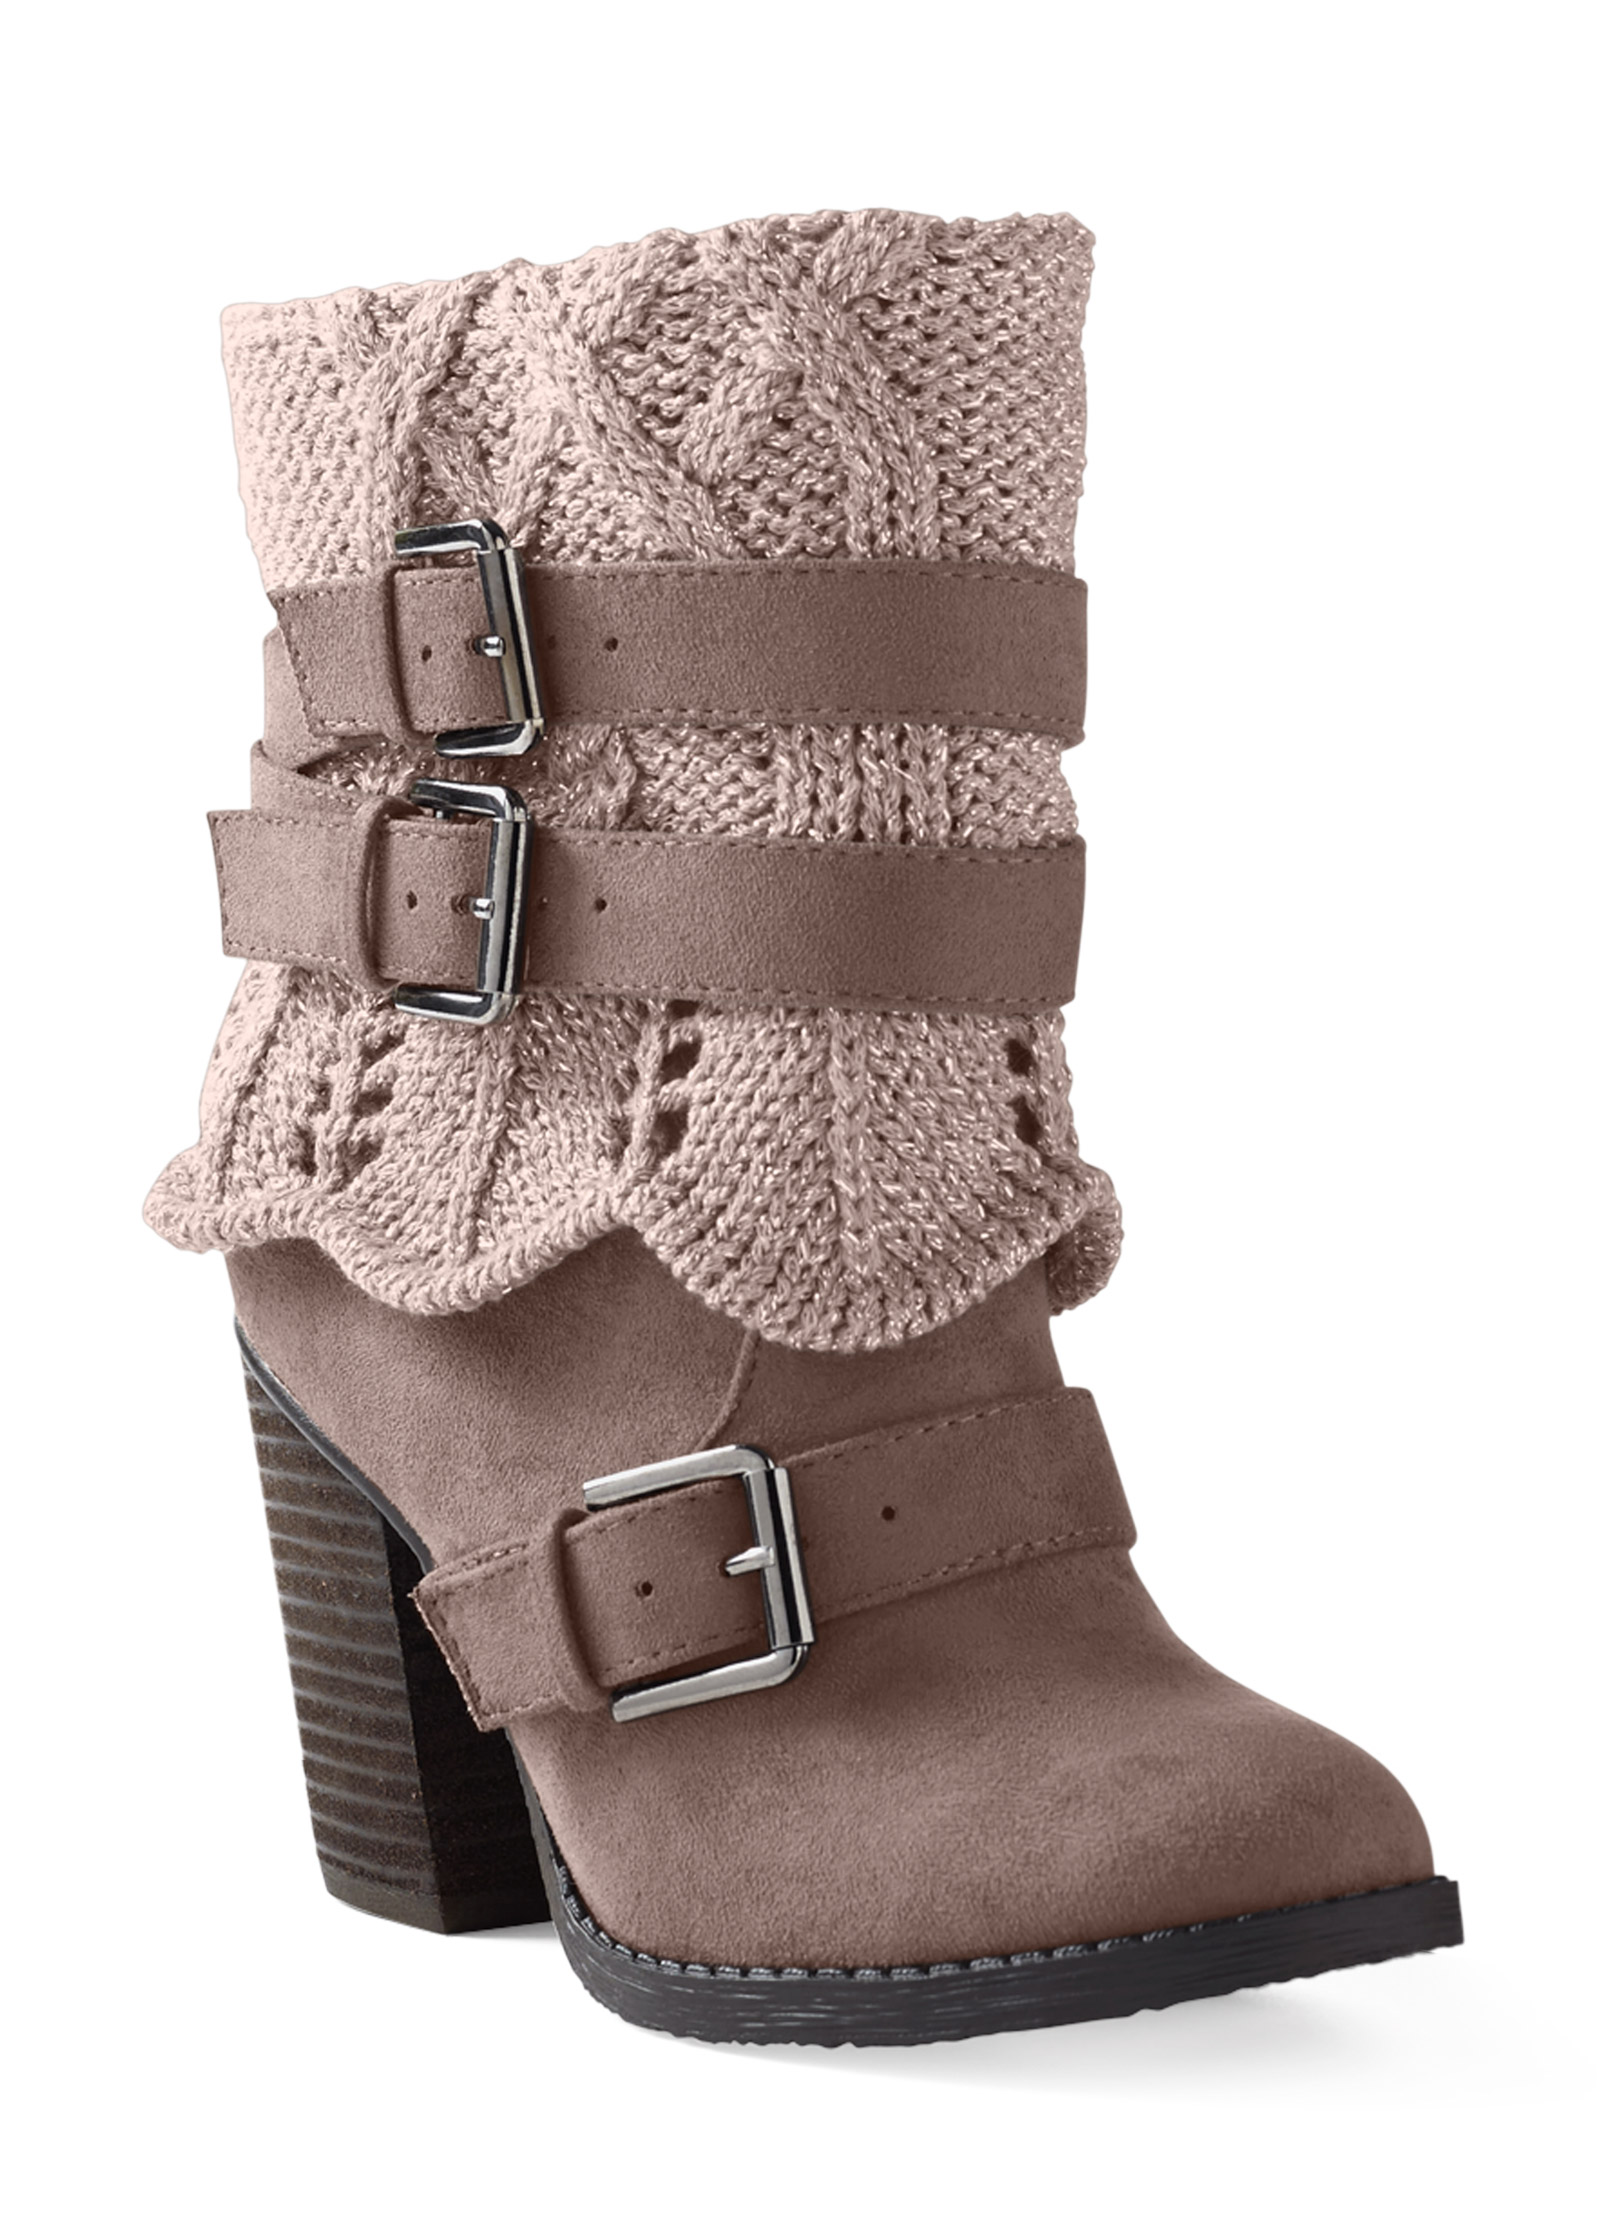 NEW BUCKLE MY SHOE LEATHER SUEDE BOOTS ZIPPED BOOTS LESS THAN HALF PRICE   VENUS